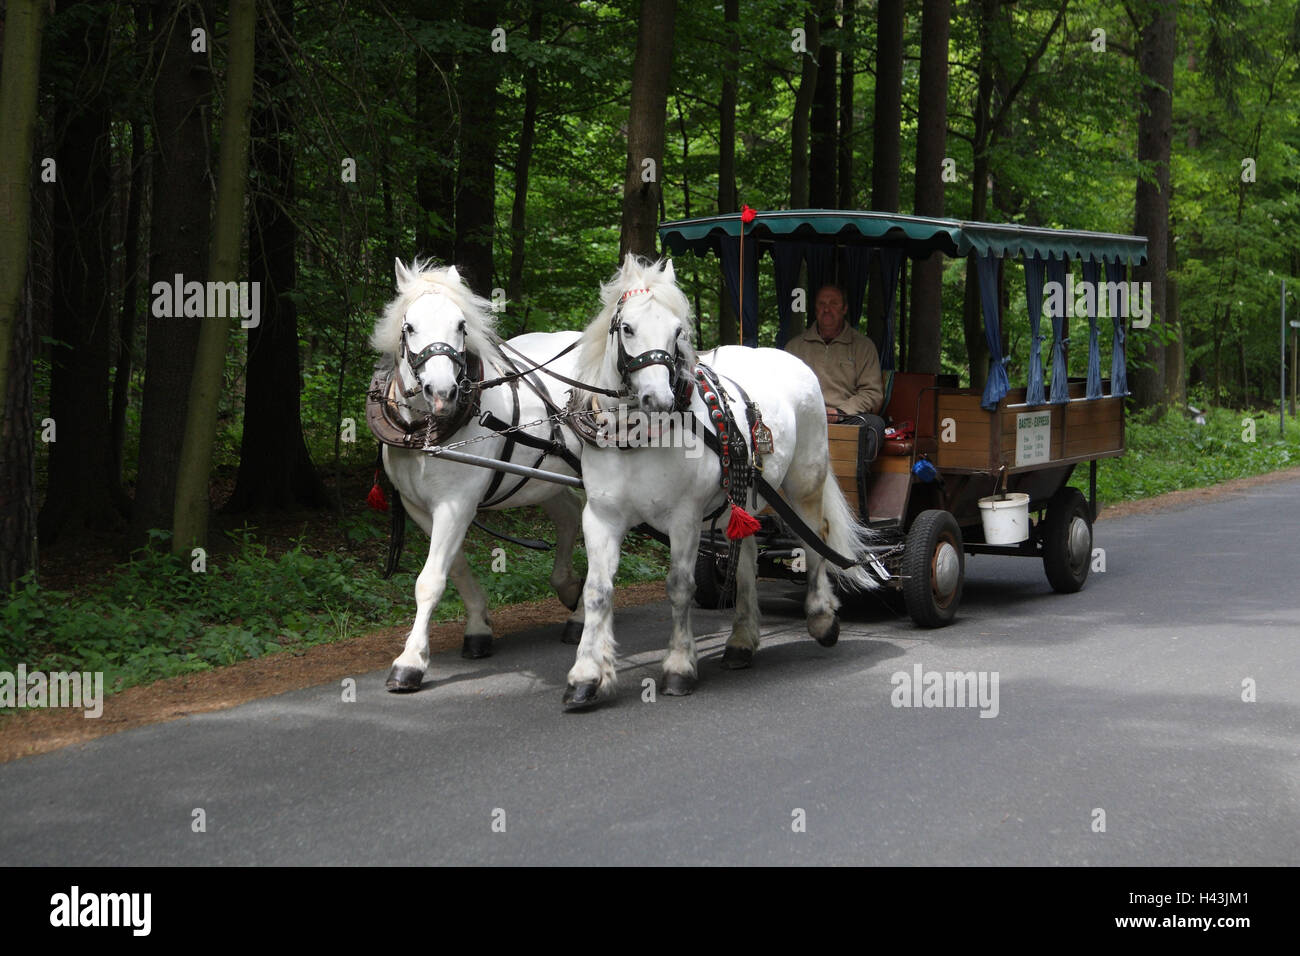 Germany, Saxon Switzerland, bastion, wood, horse's carriage, - Stock Image